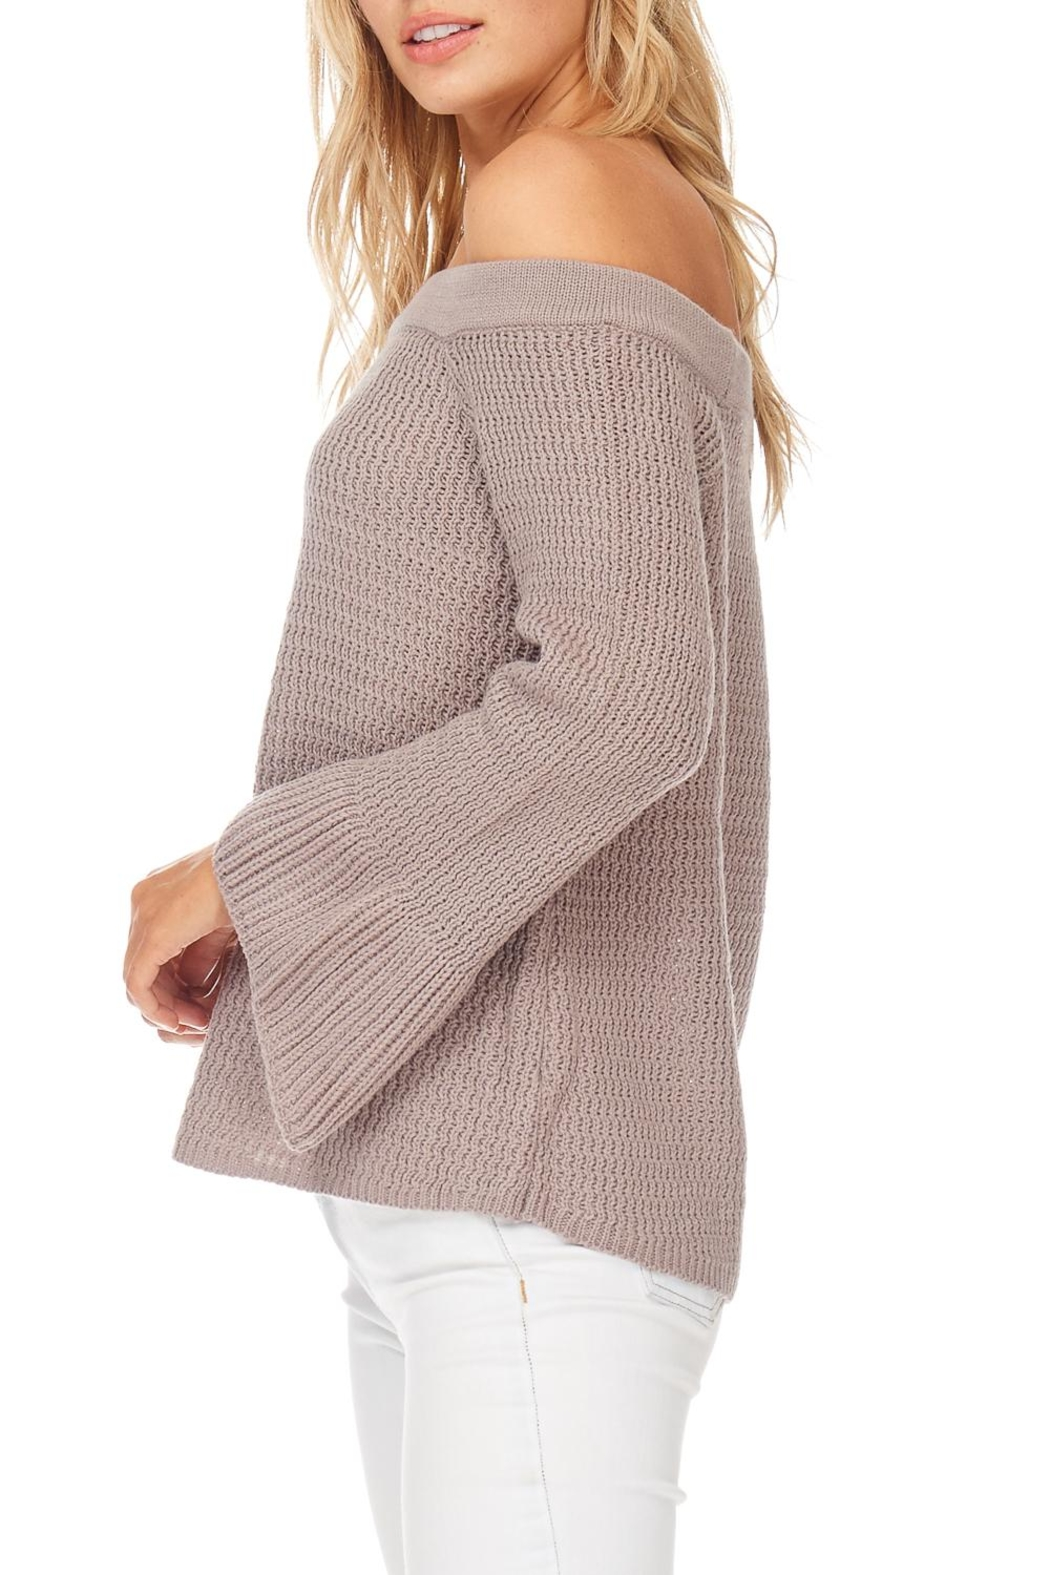 LoveRiche Solid Off The Shoulder Sweater - Back Cropped Image